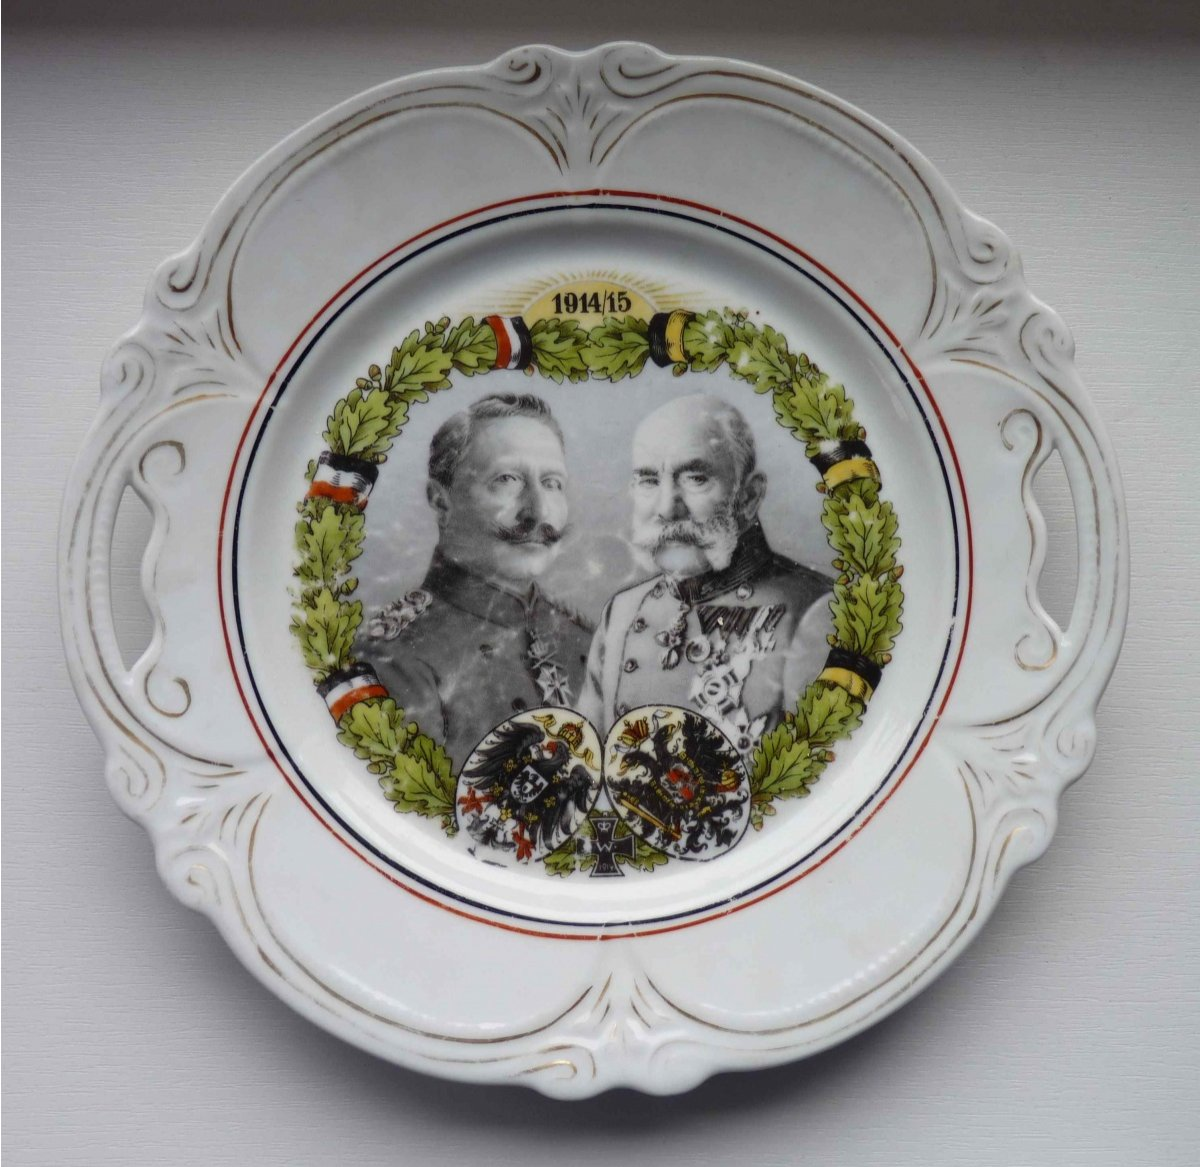 Double portraits of emperors - Franz Josef and Wilhelm